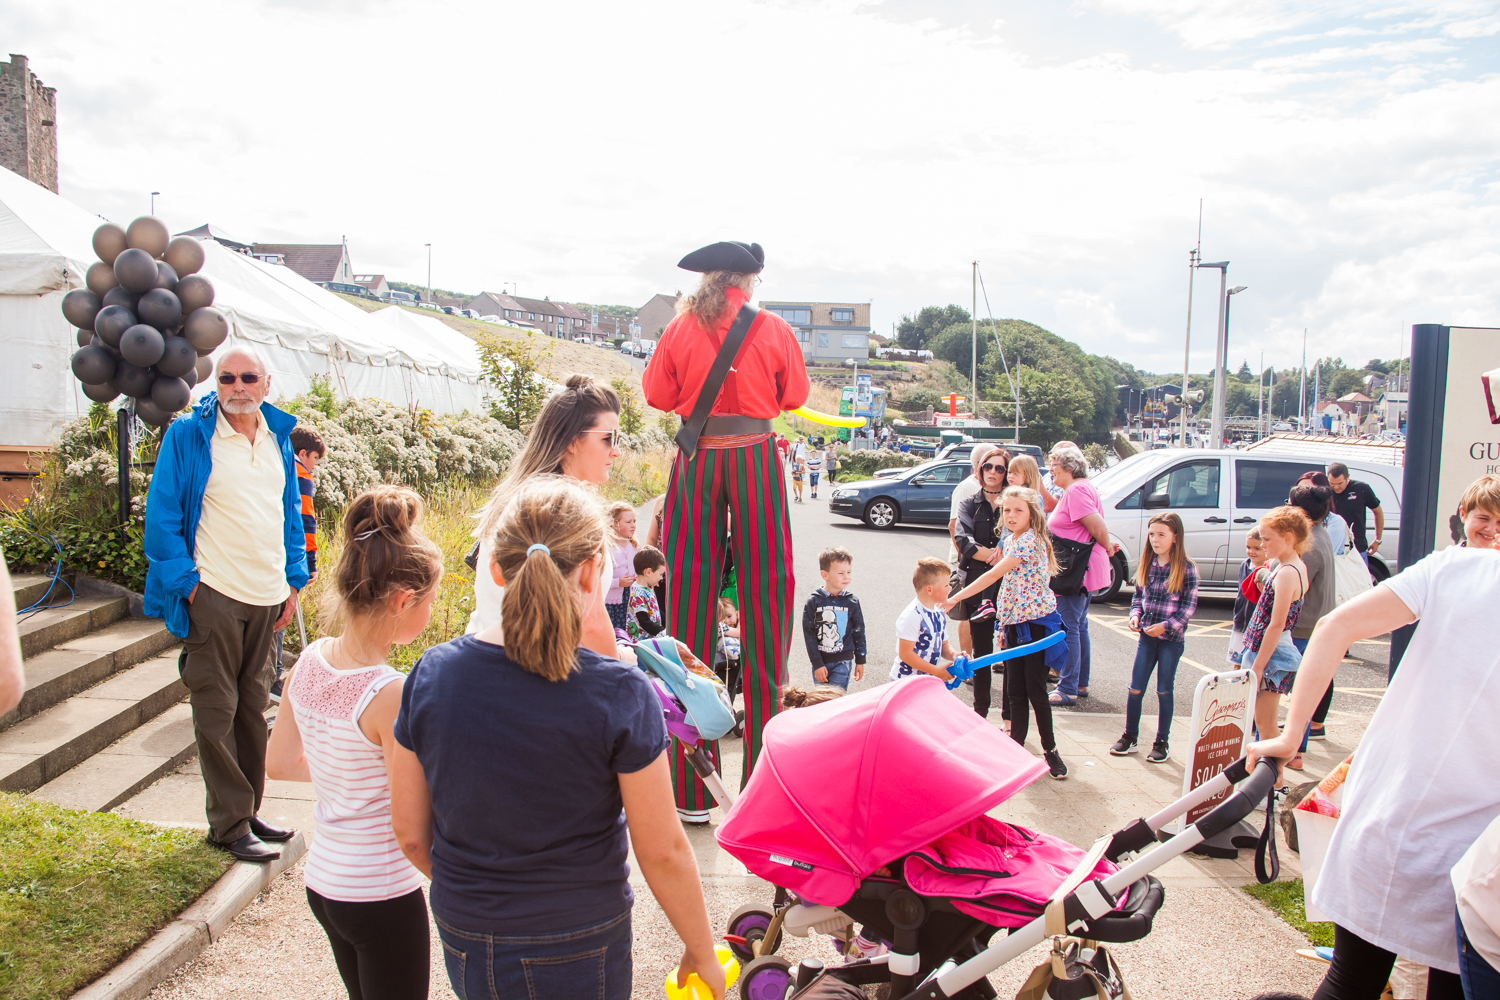 PICTORIAL_BERWICK_eyemouth-gunsgreen-extravaganza-photography-entertainment-party-event-photographer-harbour-gary-dunn-dancers-stilts-performances-speeches-day-out-summer-4612.jpg